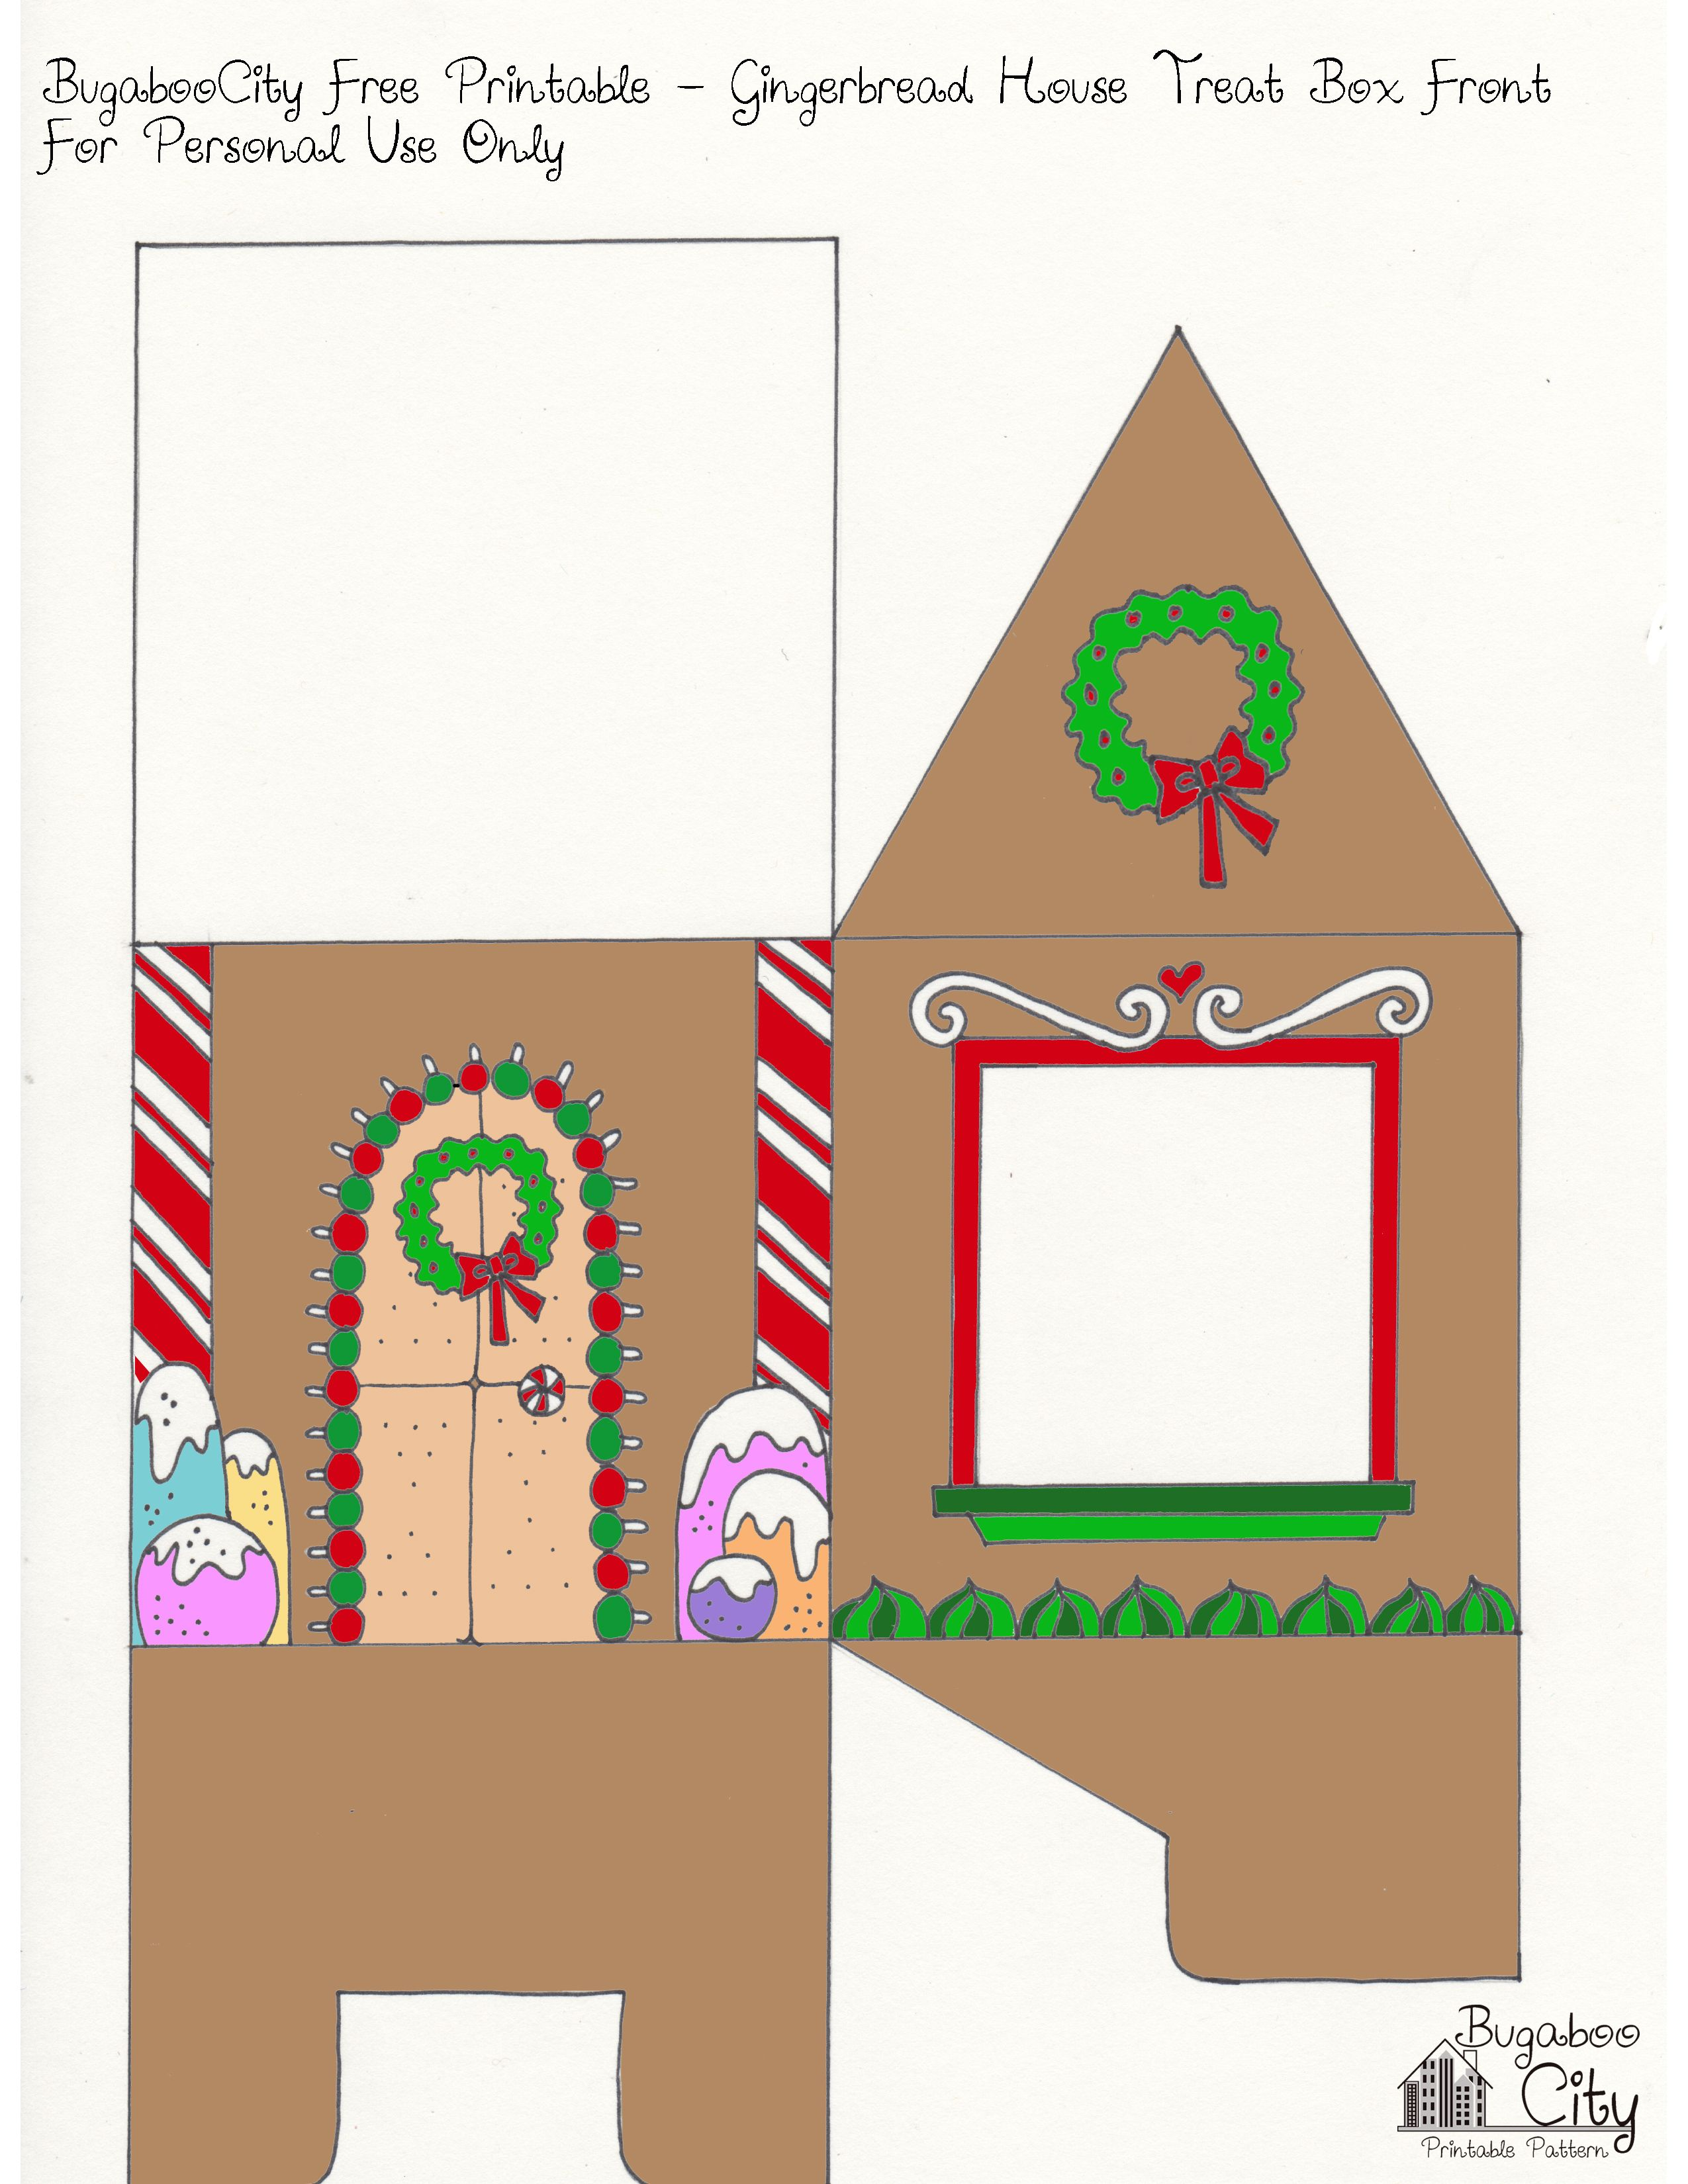 Gingerbread house free printables - Gingerbread House Printable Front Jpg 2550 3300